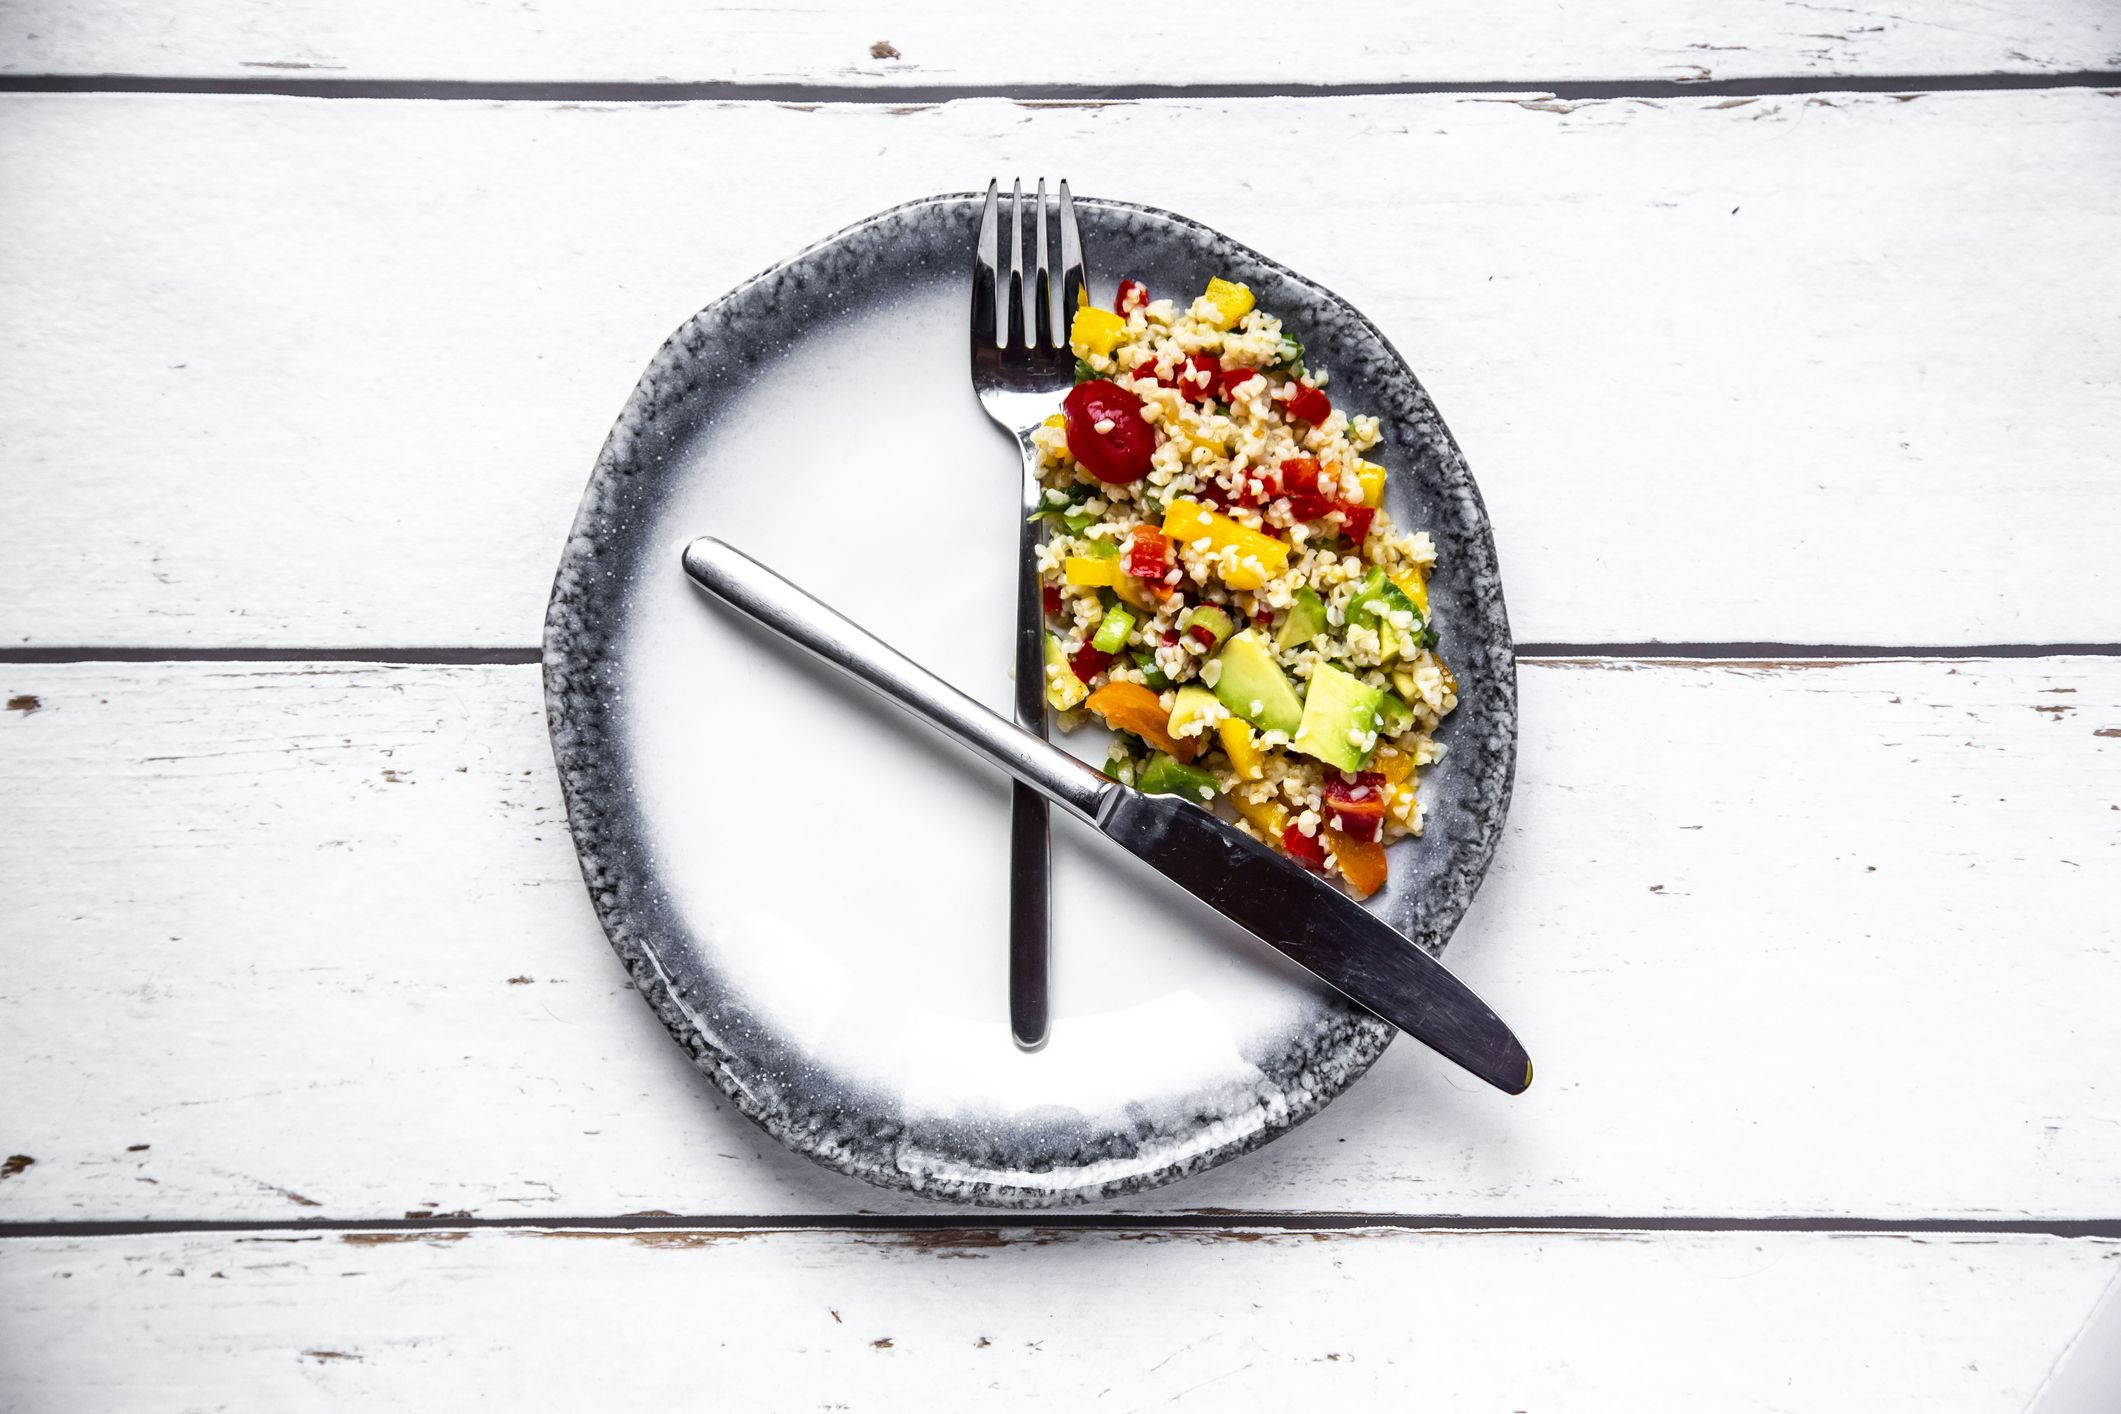 5 on 2 off fasting diet